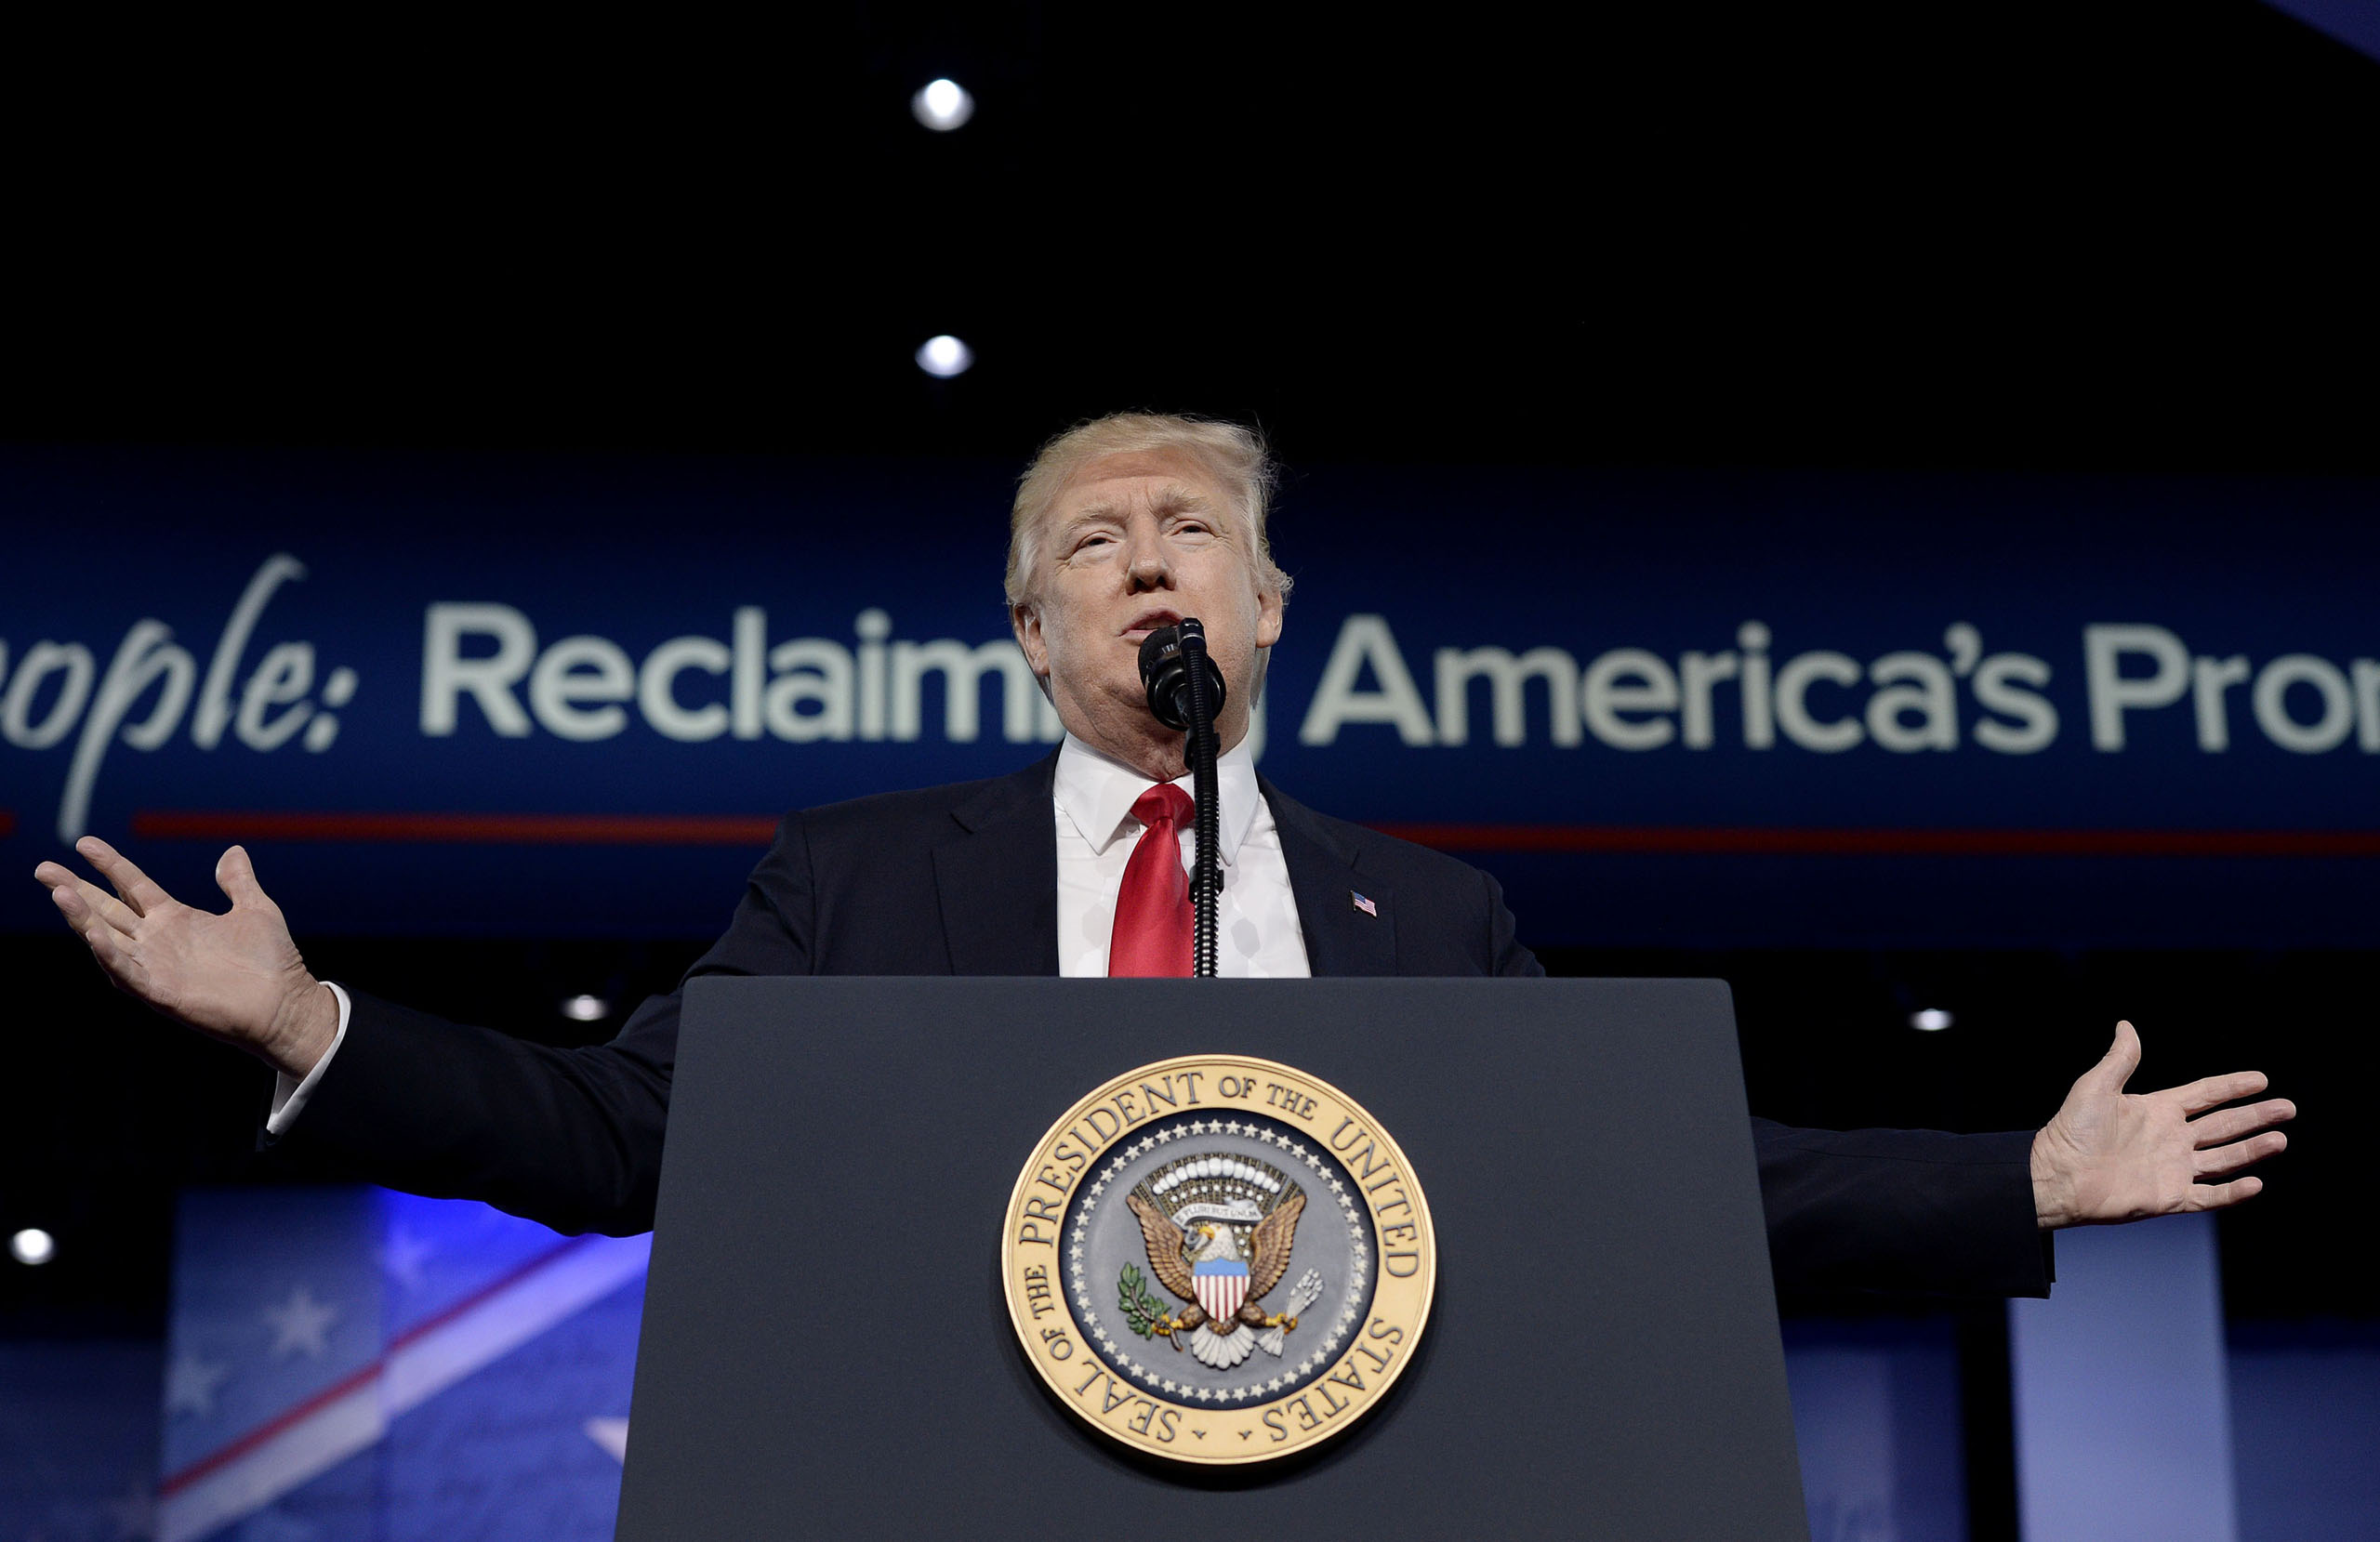 President Donald Trump delivers remarks to the Conservative Political Action Conference (CPAC) in National Harbor, Maryland on Feb. 24, 2017.